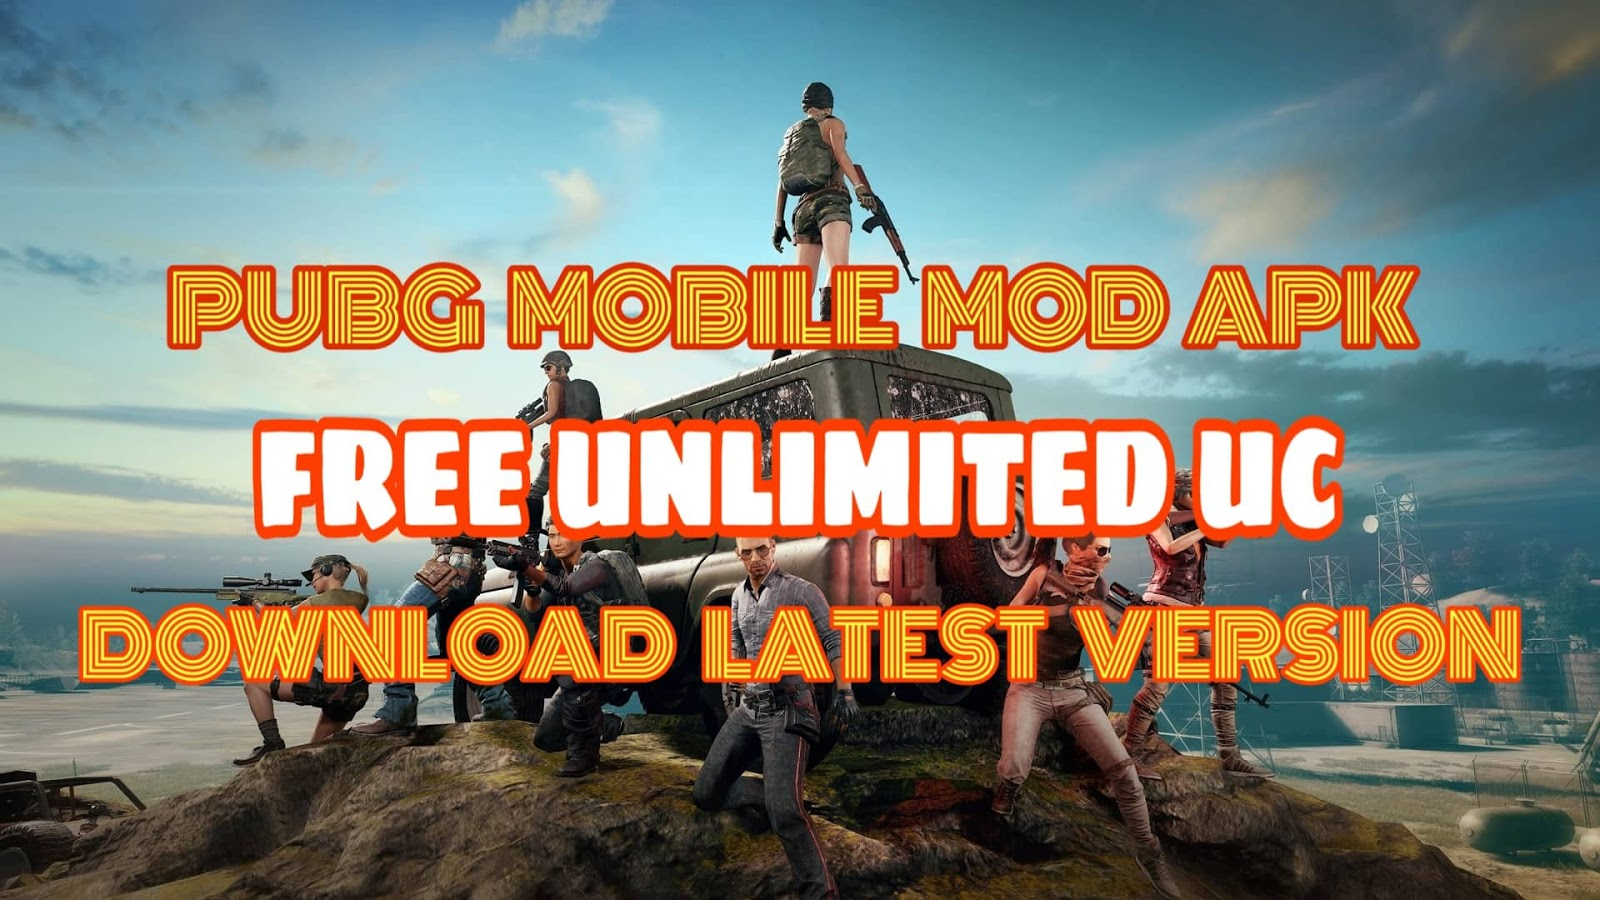 PUBG MOBILE HACK - MOD APK DOWNLOAD - FREE UC - APKSuncle